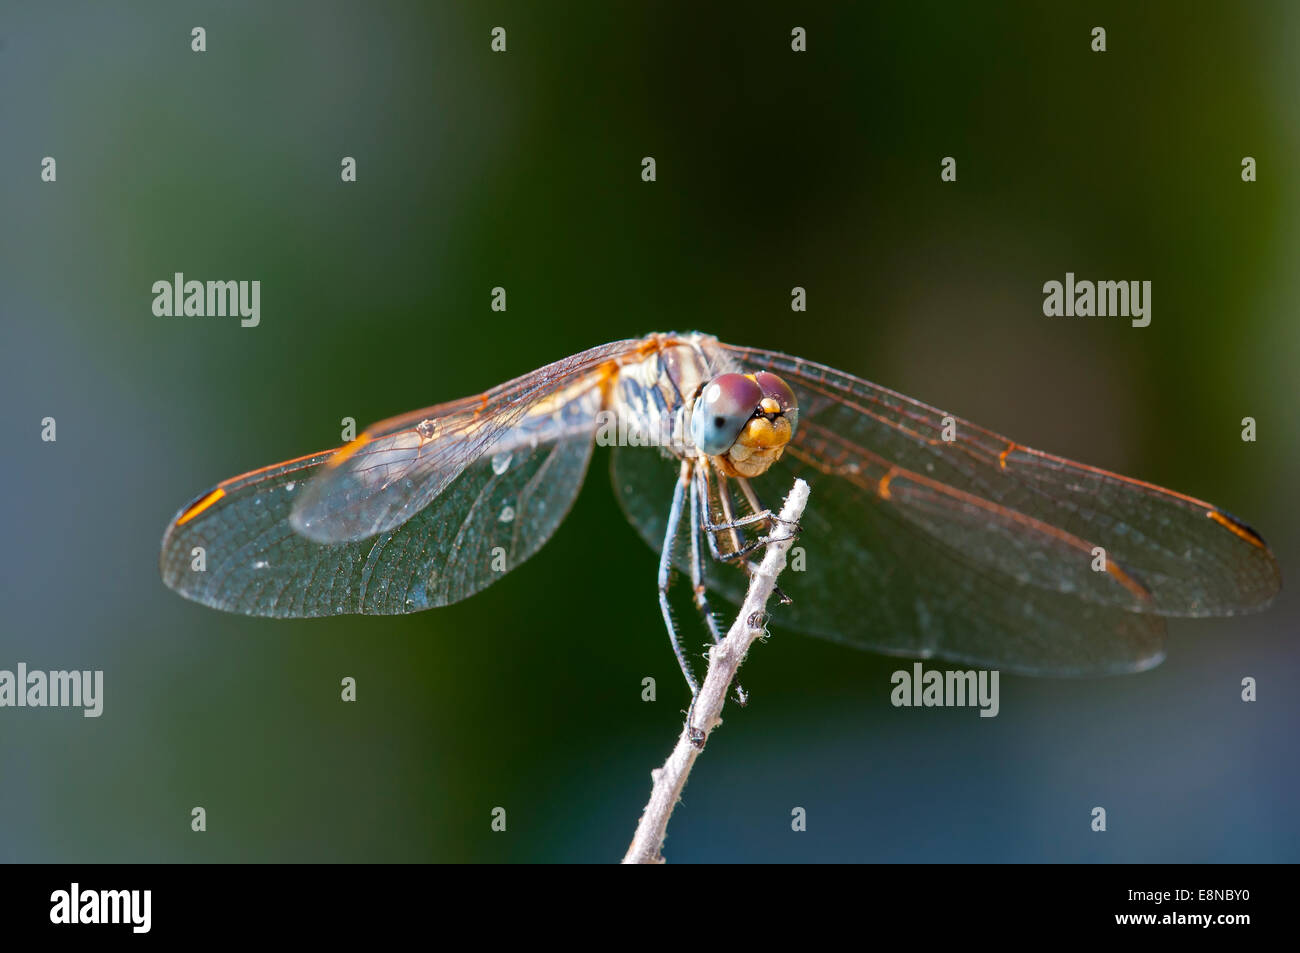 Dragonfly close-up, Front view - Stock Image